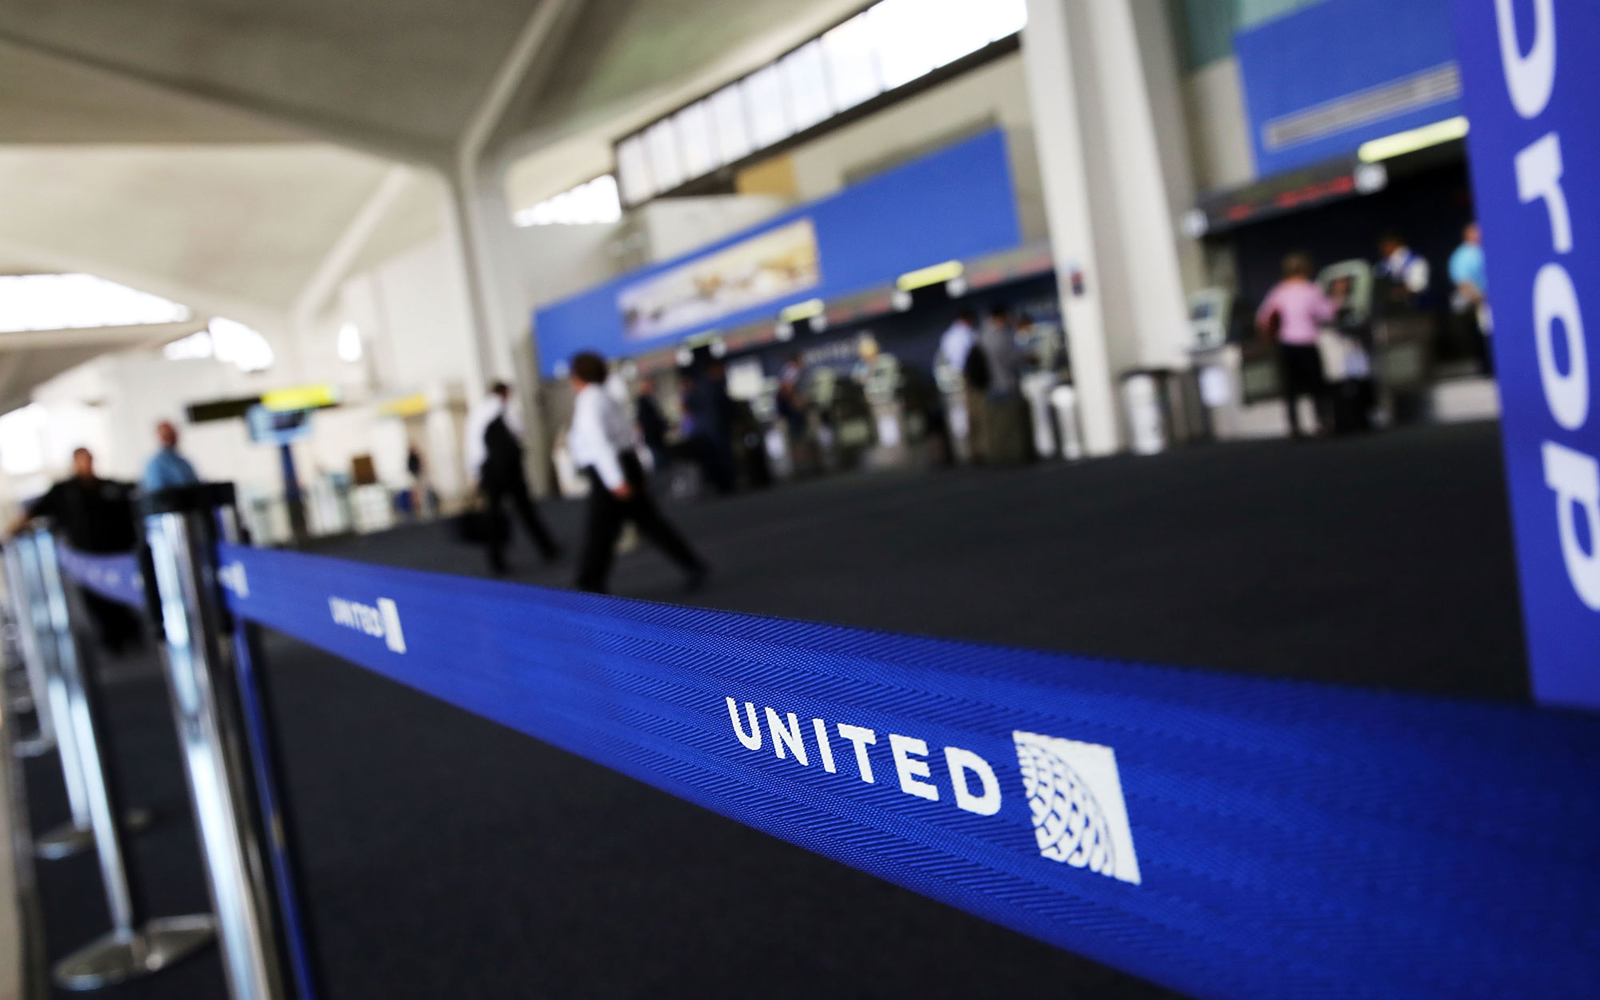 United Airline Fees Drop